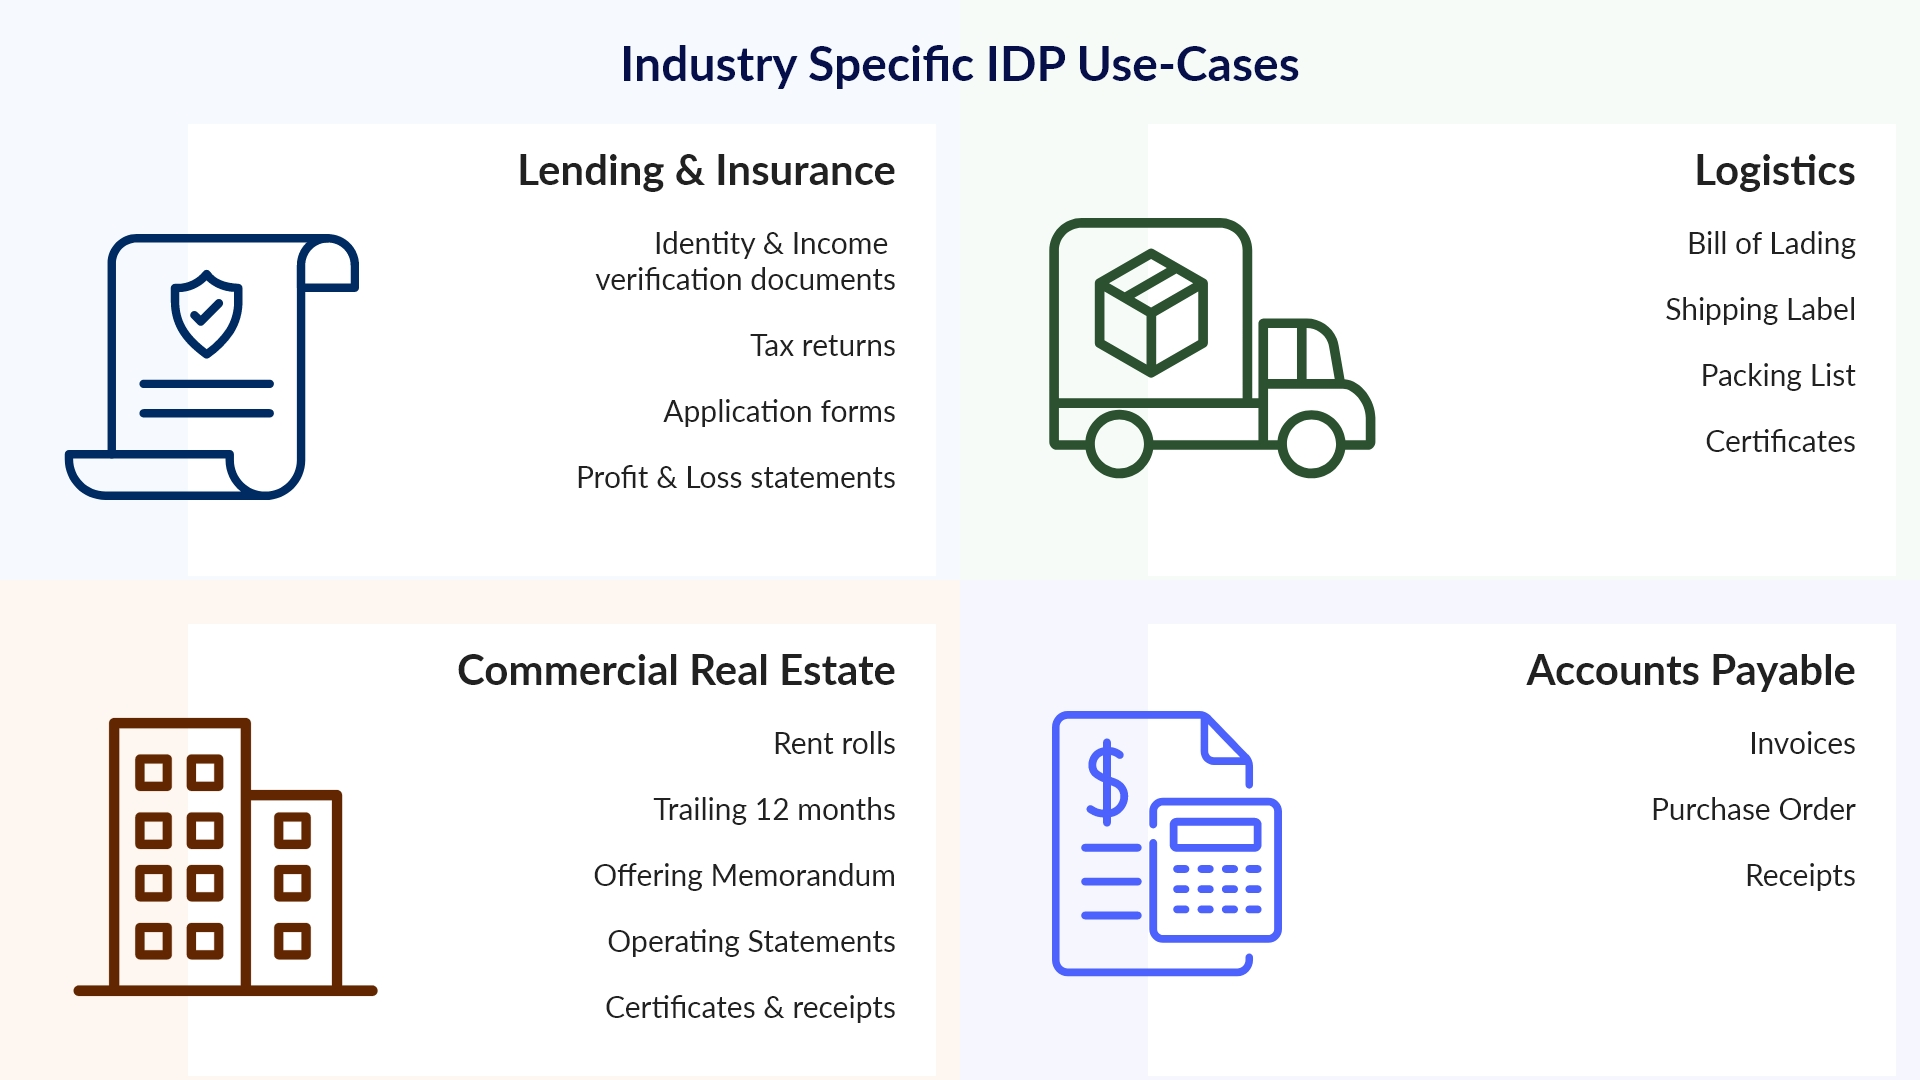 Industry specific IDP use-cases